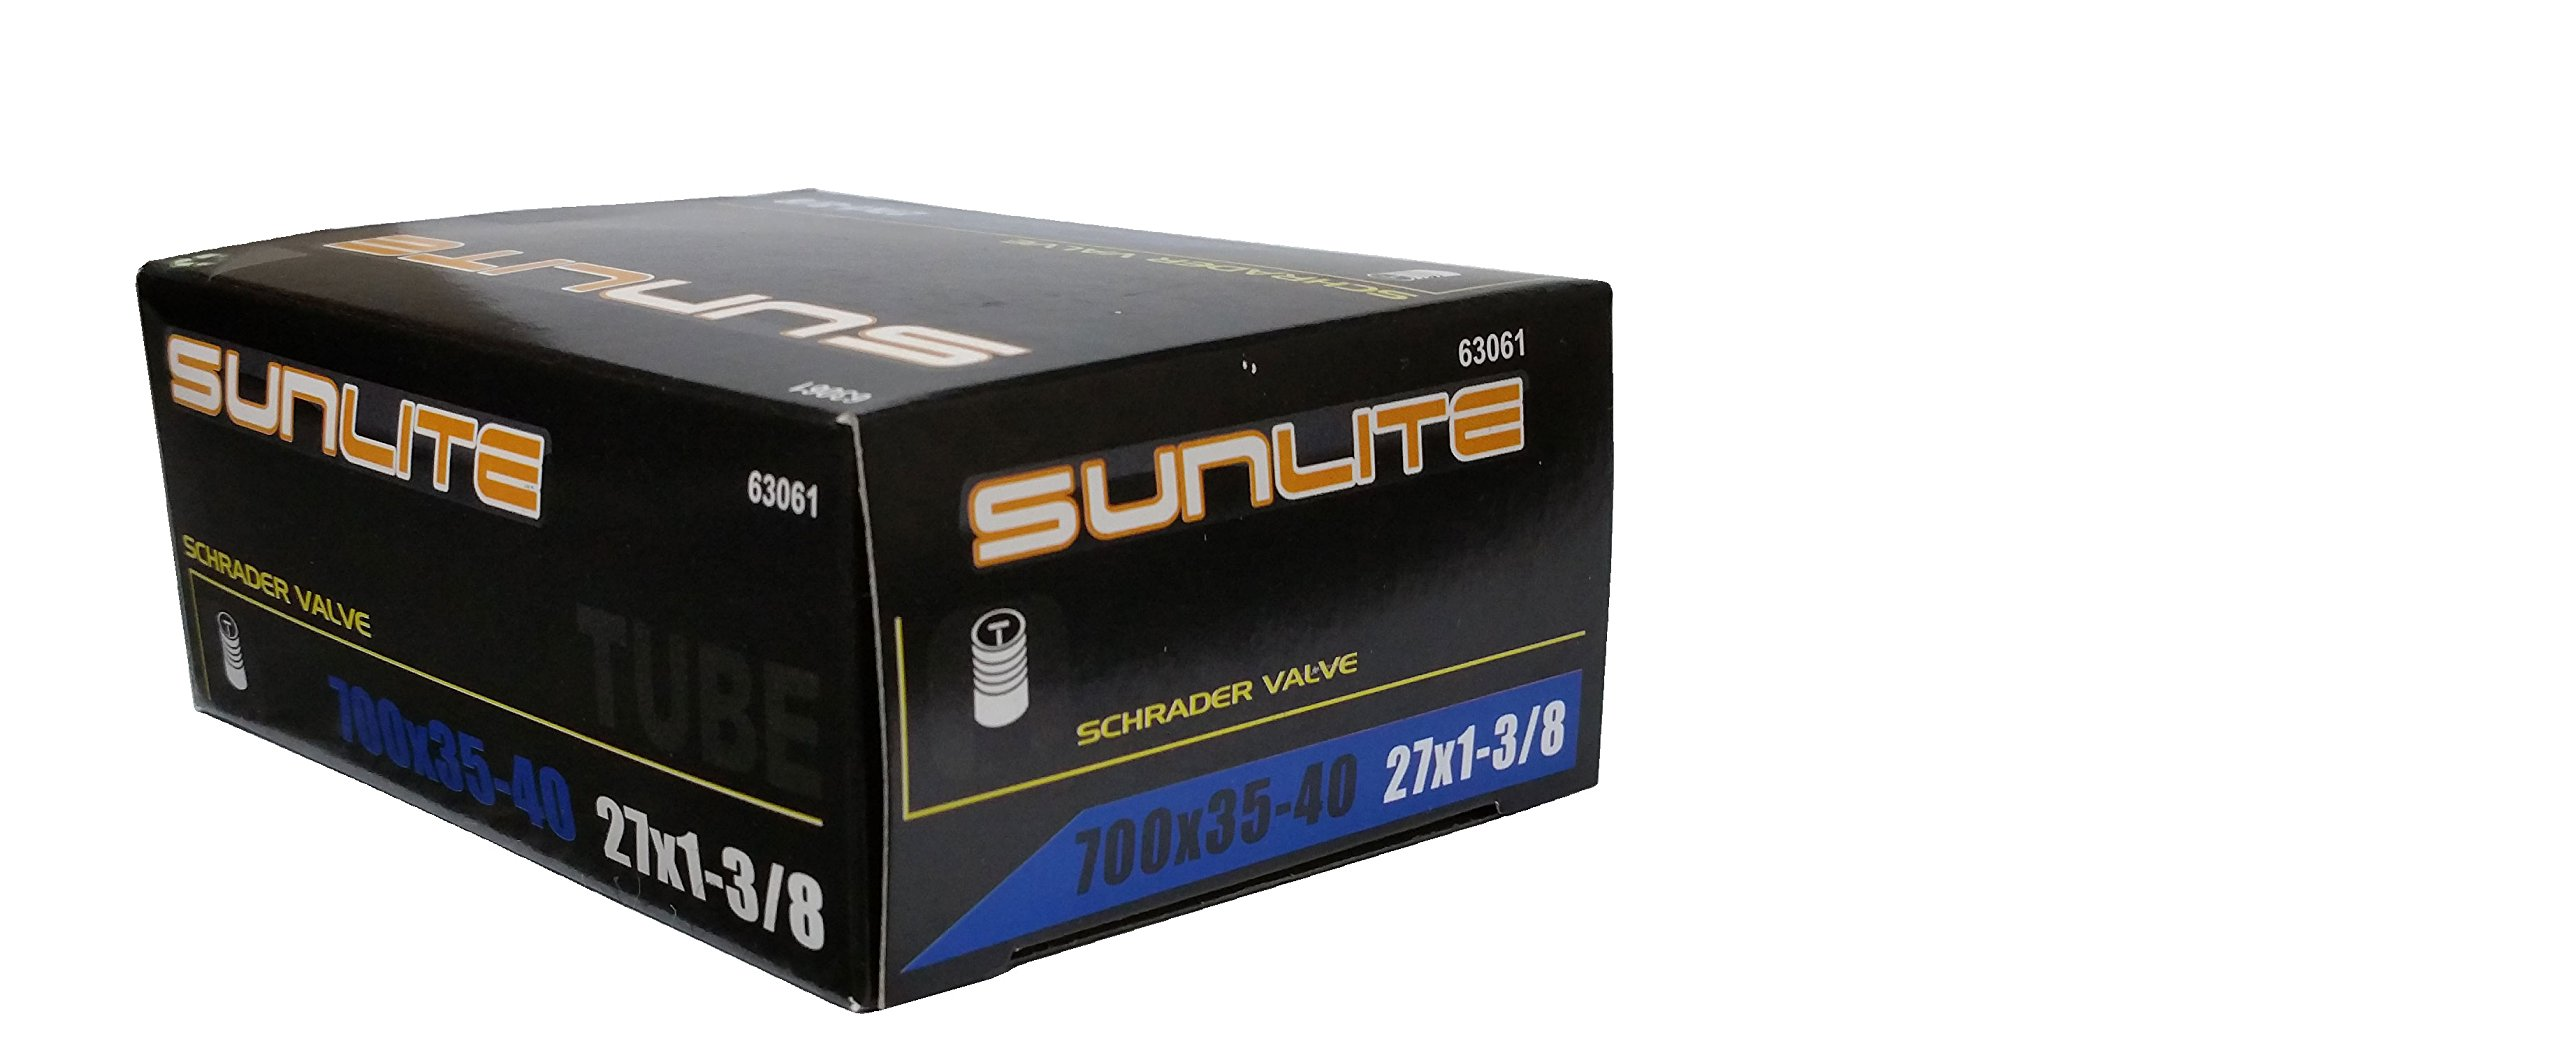 Street Fit 360 Tube, 700 x 35-40 (27 x 1-3/8) Schrader Valve 32mm, Sunlite by Street Fit 360